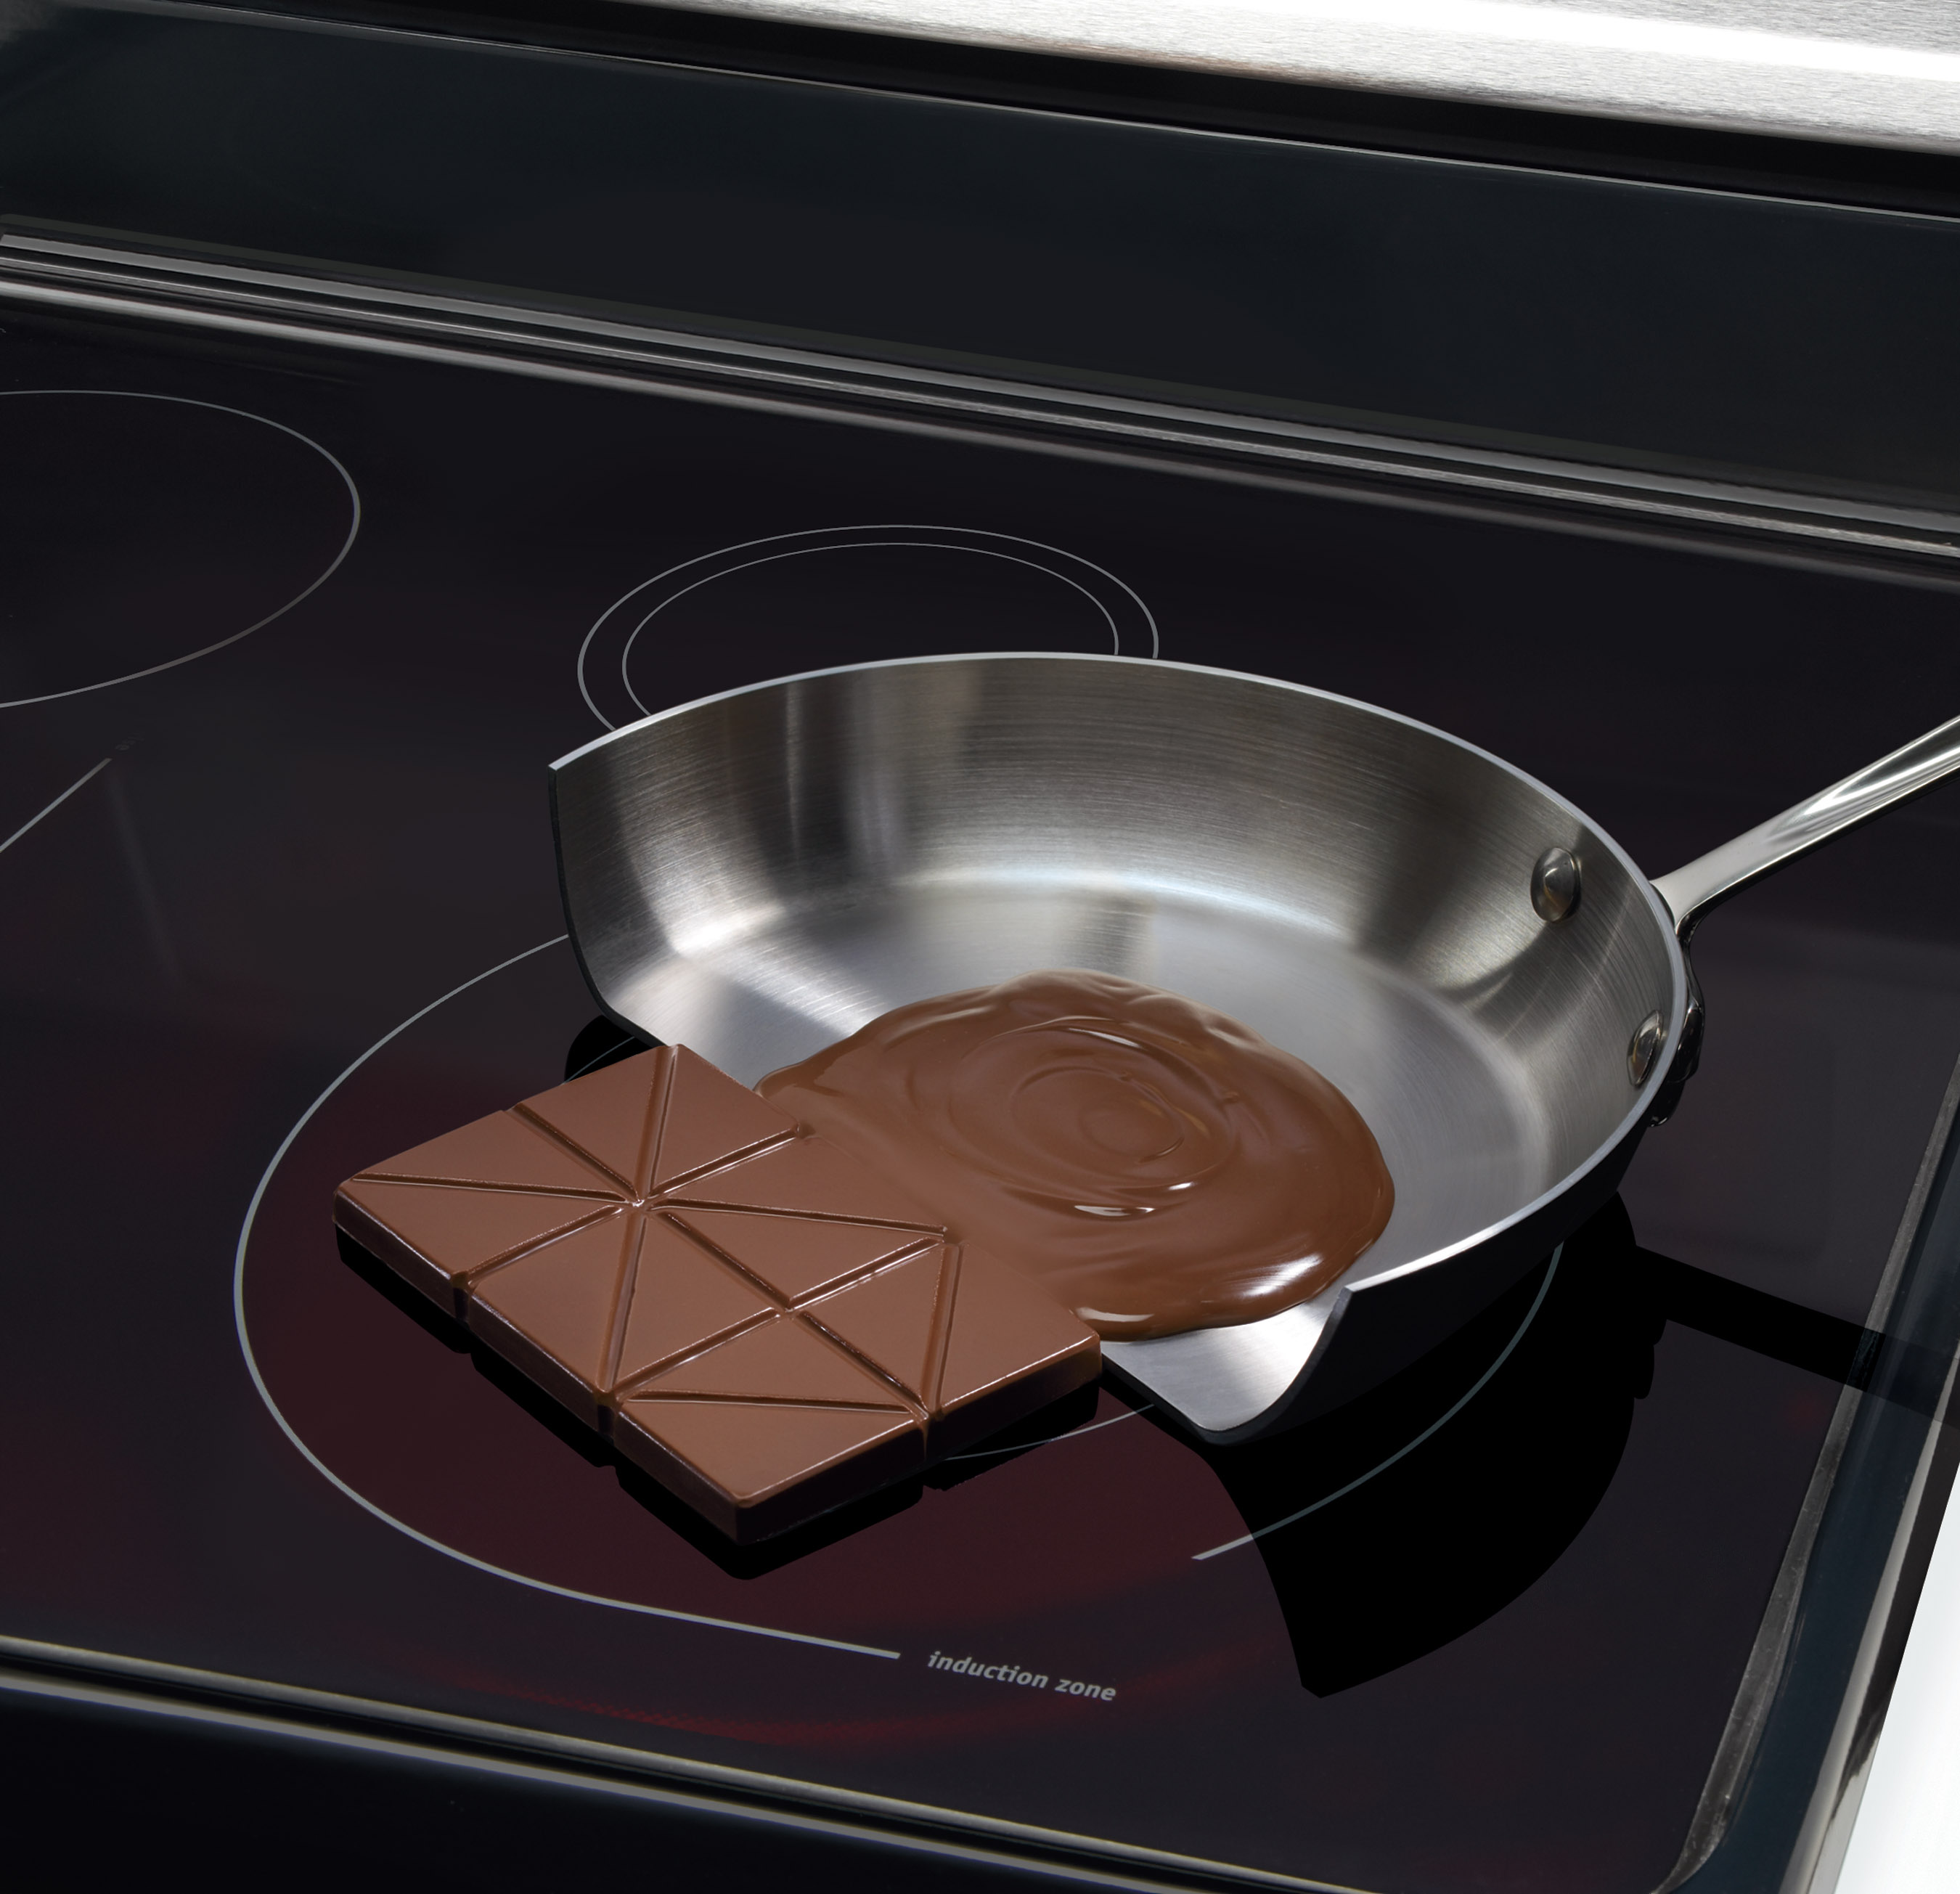 Induction Cooktop Induction Cookware Made Simple Tundra Restaurant Supply